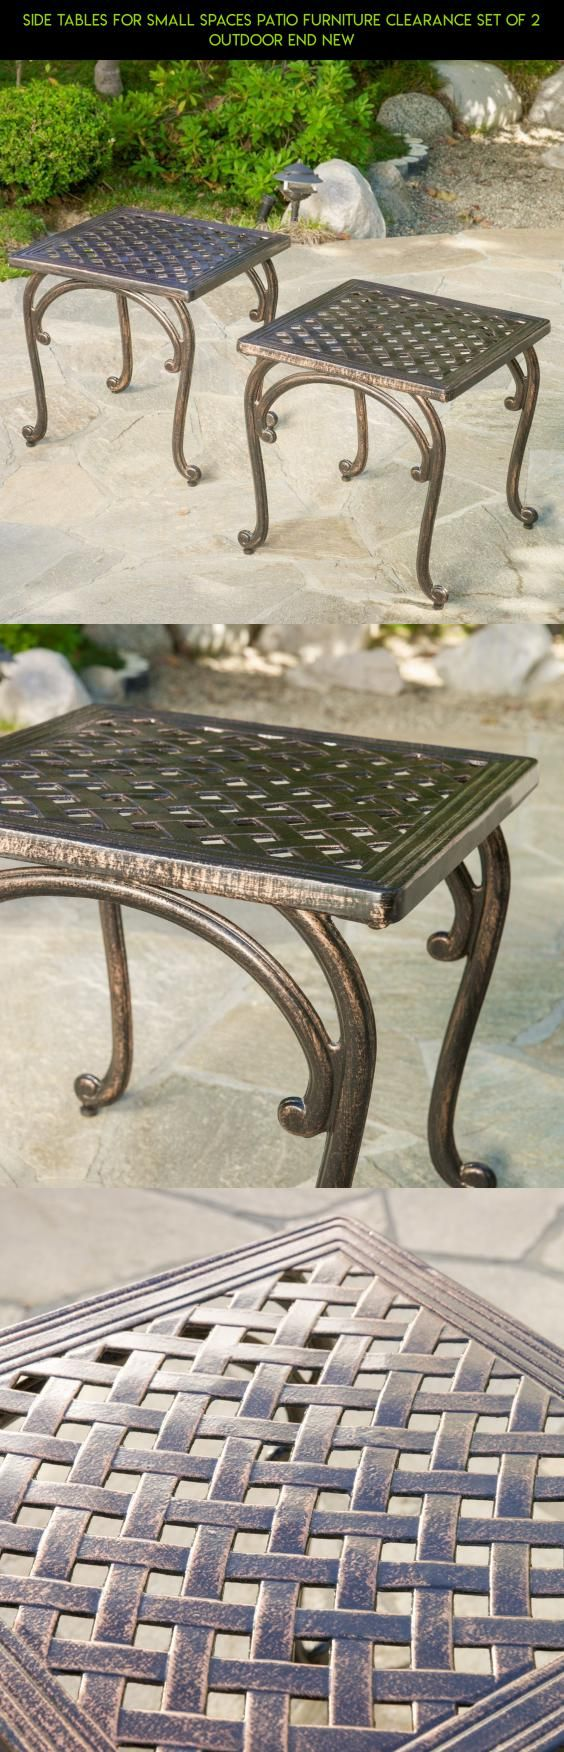 Side Tables For Small Spaces Patio Furniture Clearance Set Of 2 Outdoor End NEW #racing #tech #plans #shopping #products #patio #kit #sets #fpv #camera #furniture #technology #drone #parts #gadgets #clearance #2